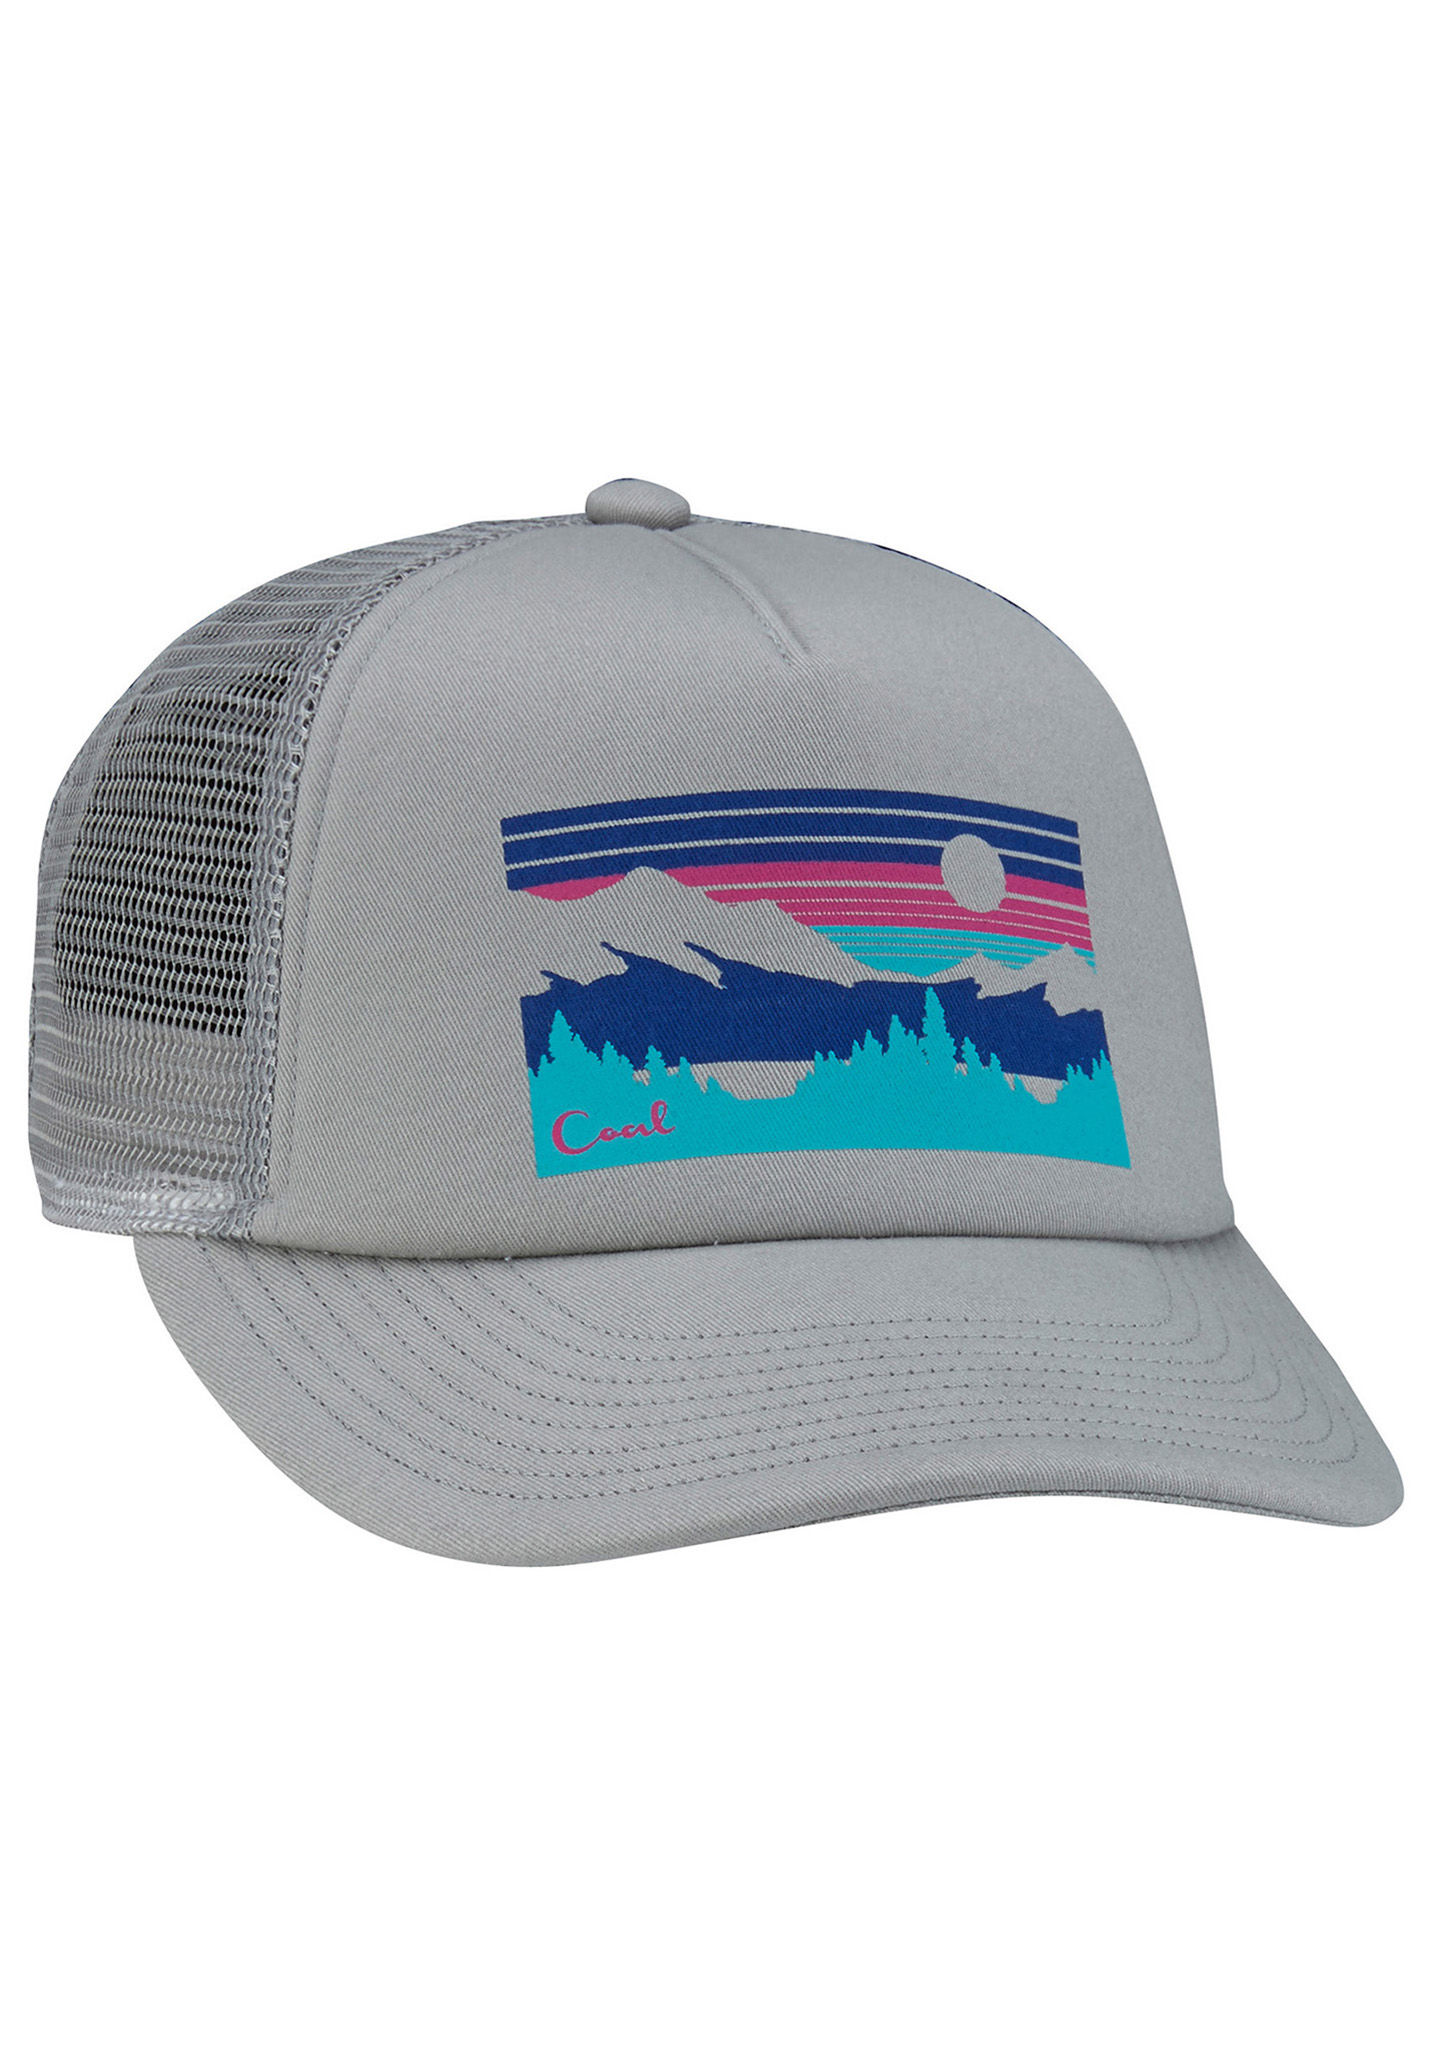 cbd7852e33b95 Coal The Seneca - Trucker Cap - Grey - Planet Sports